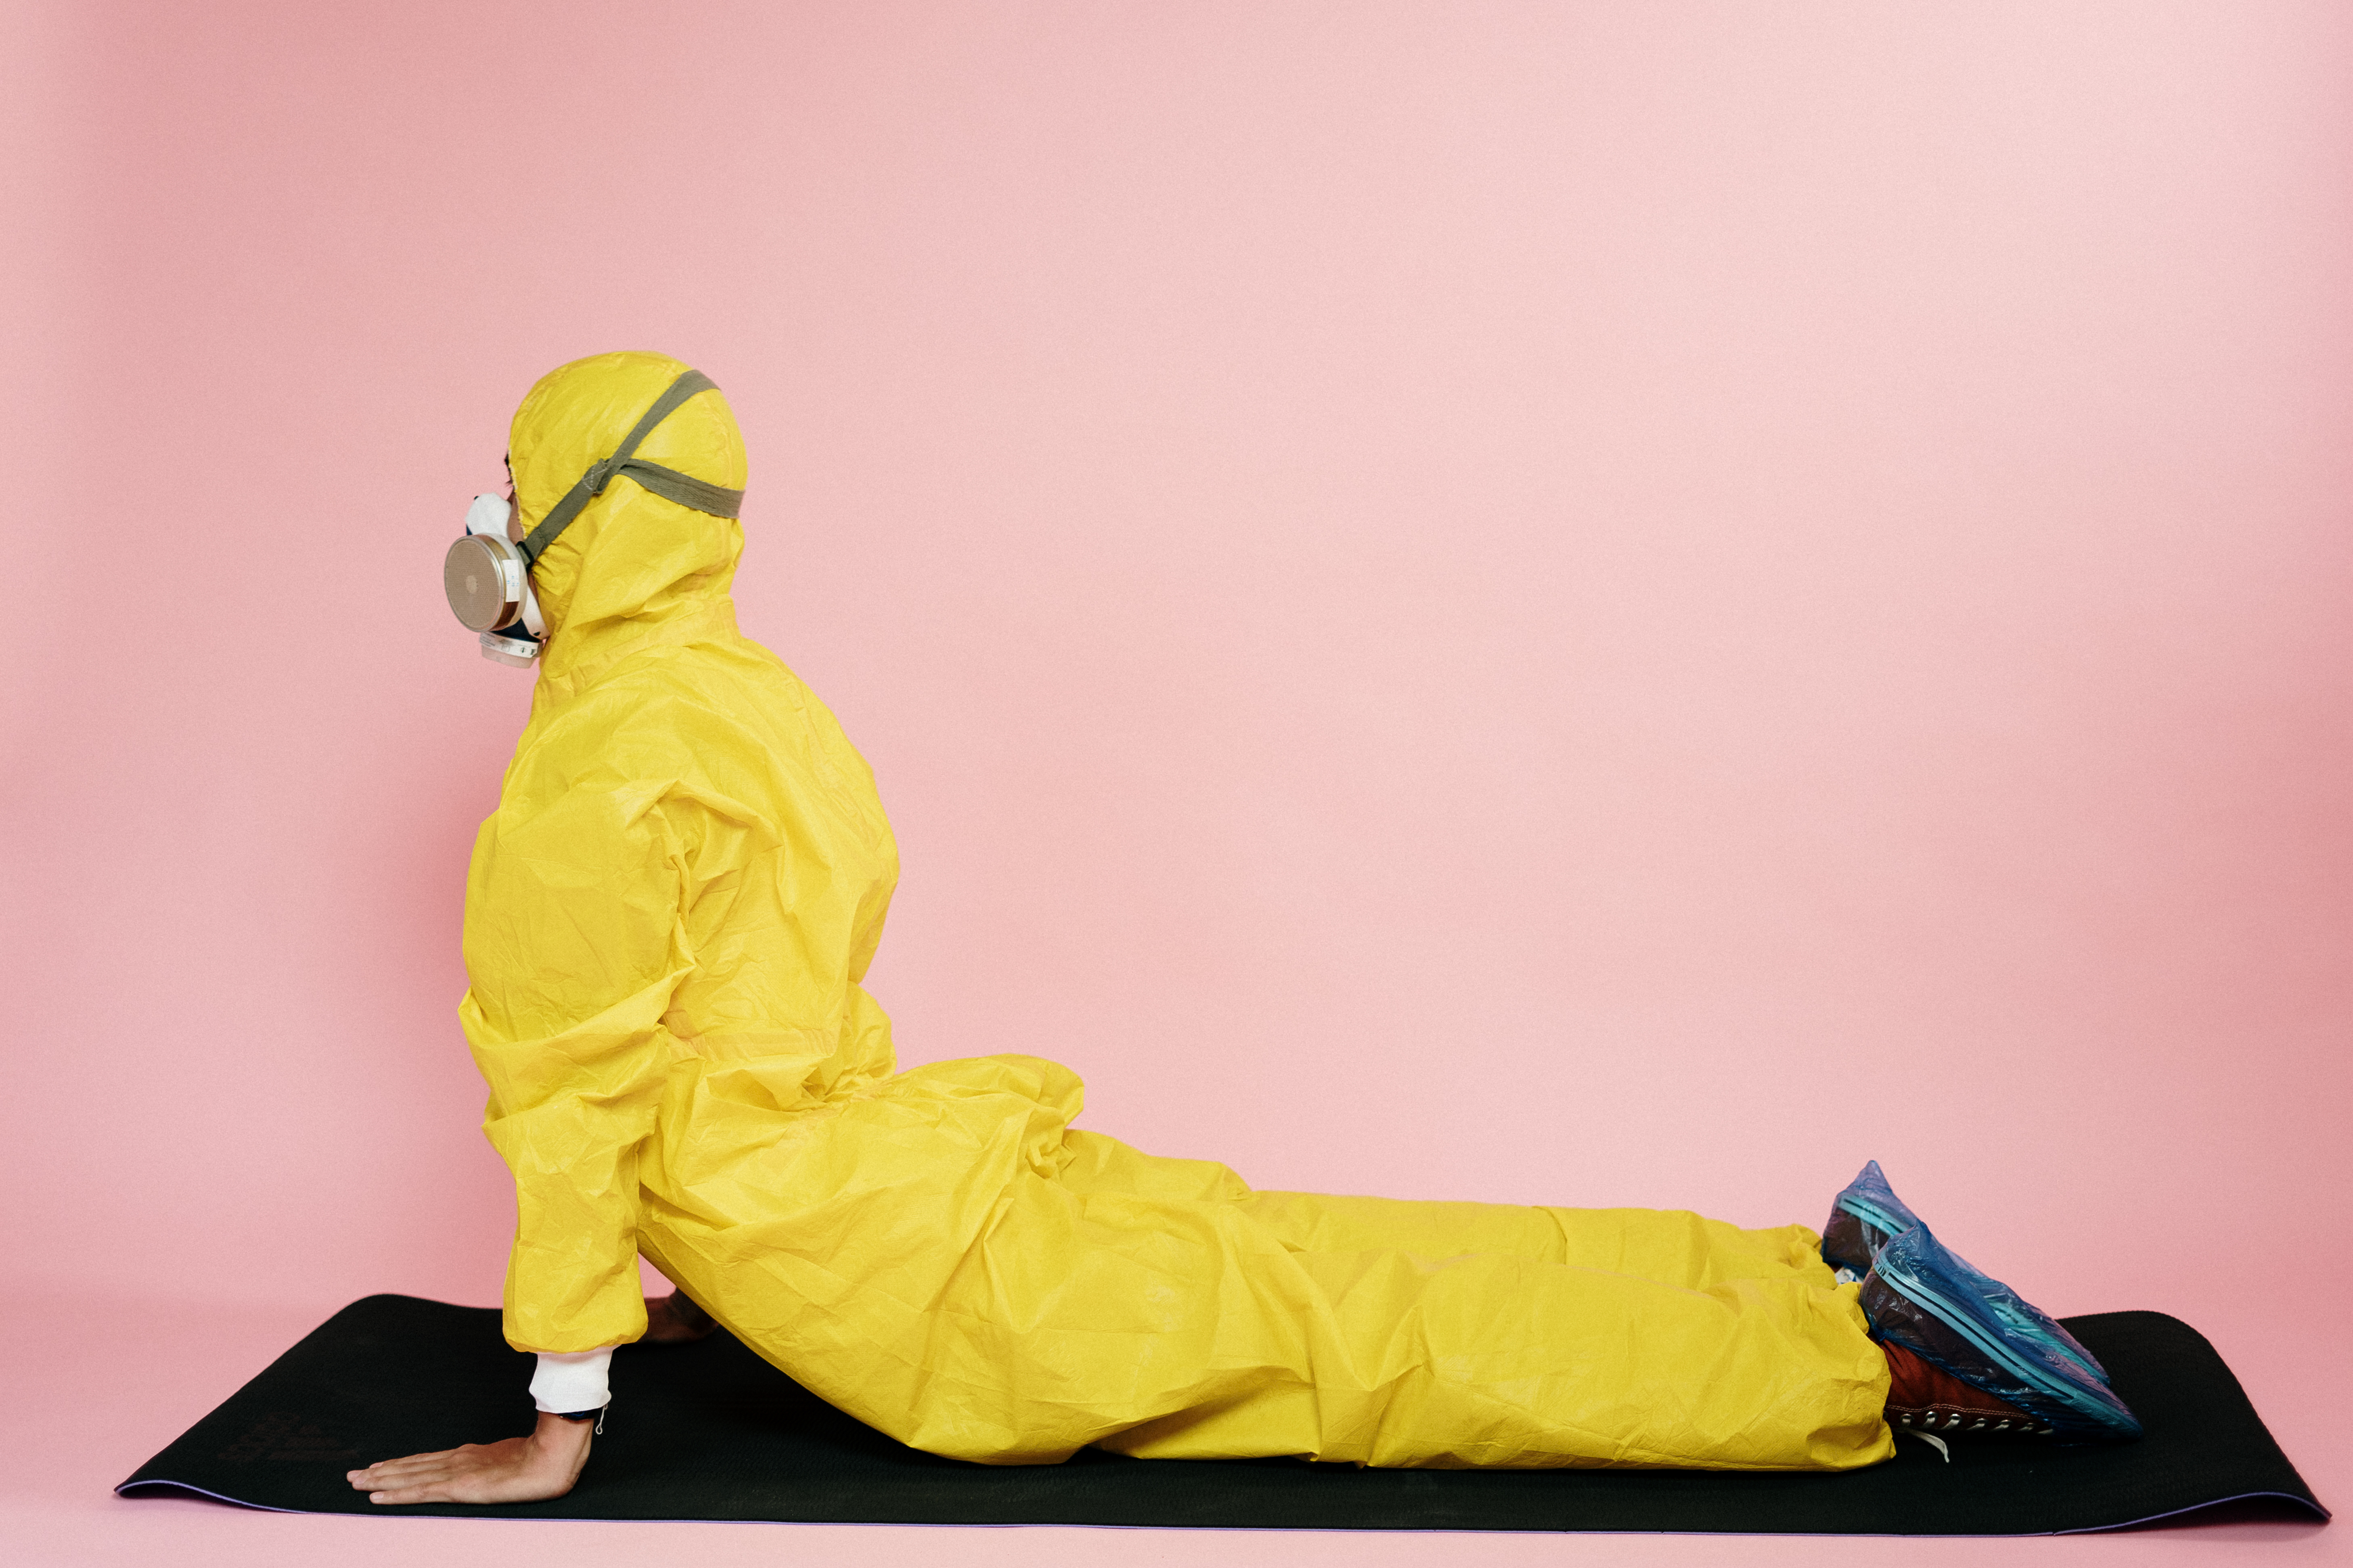 canva-man-in-yellow-protective-suit-stretching